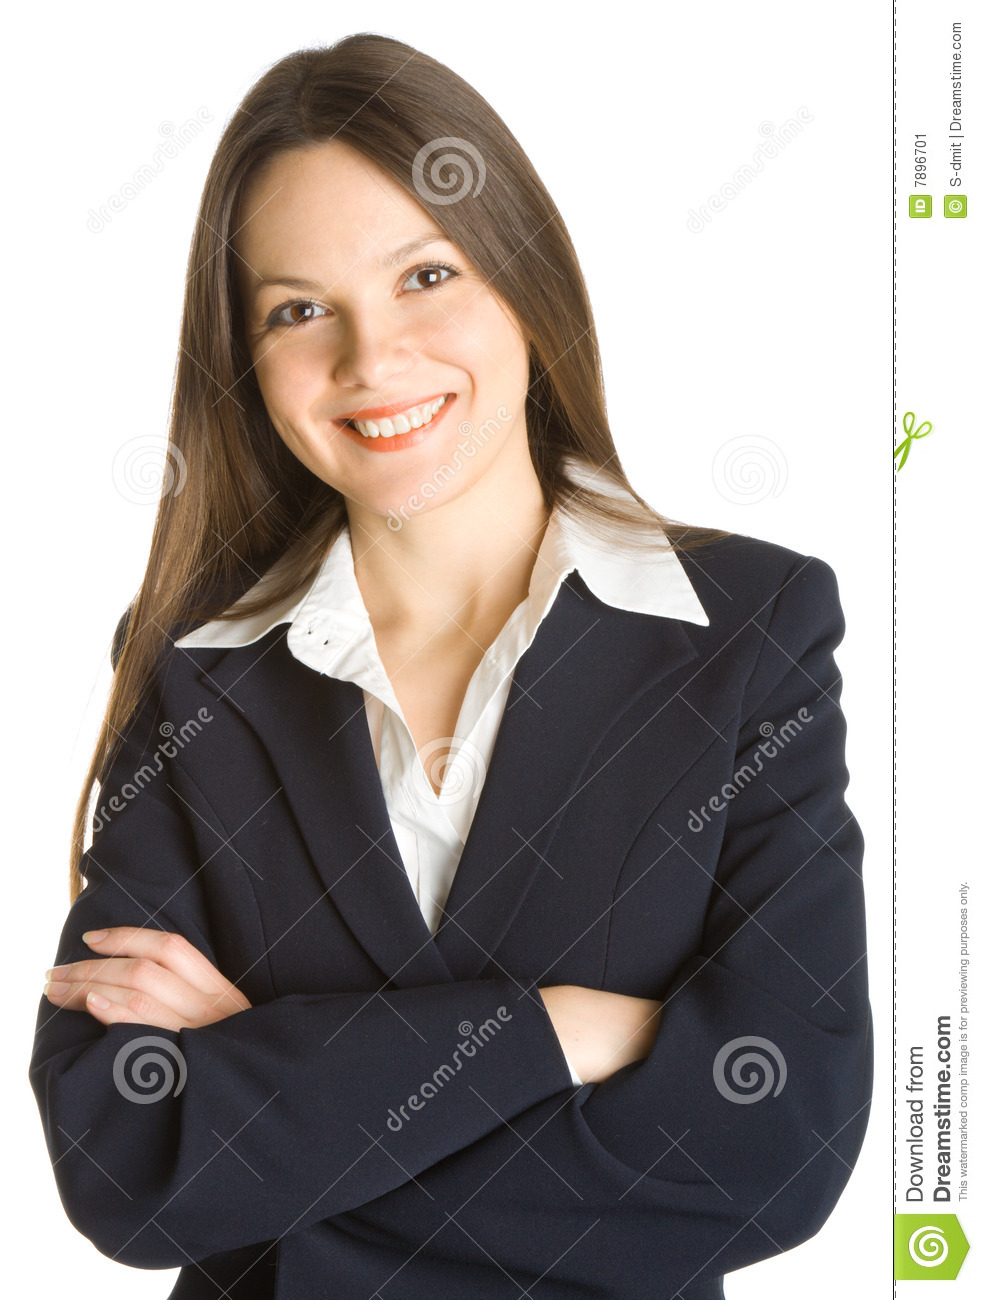 young-smiling-woman-business-suit-7896701.jpg